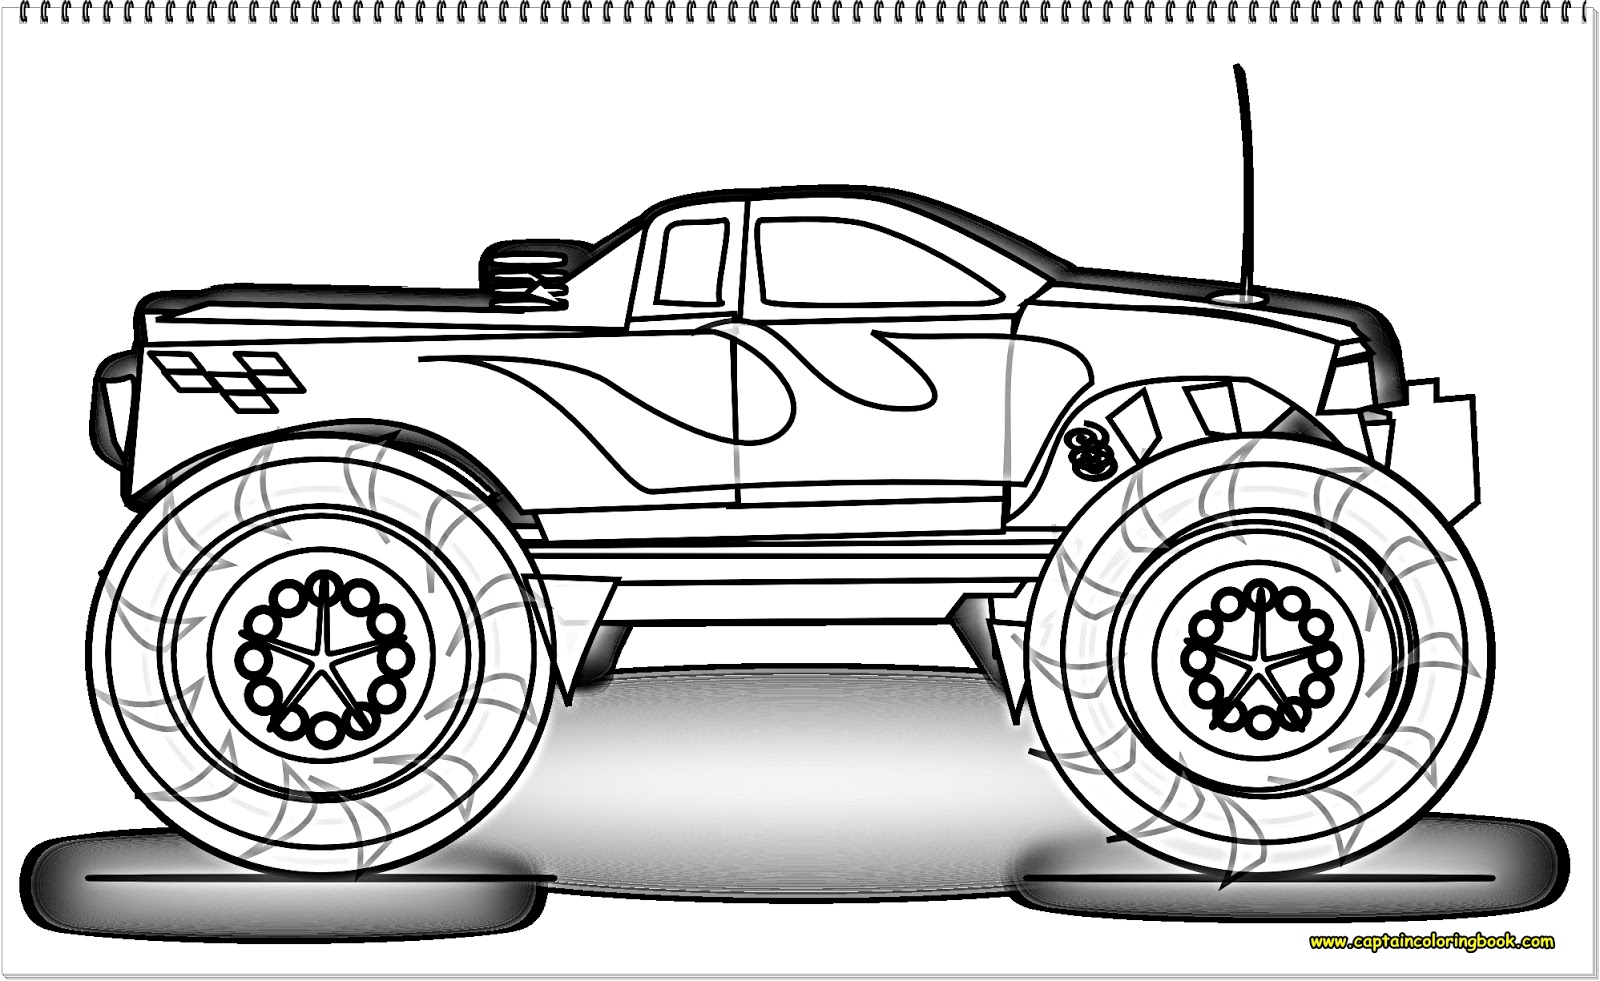 thank you for seeing gallery of free coloring pages for boys cars we would be very happy if you come back free coloring pages - Free Coloring Pages For Boys Cars